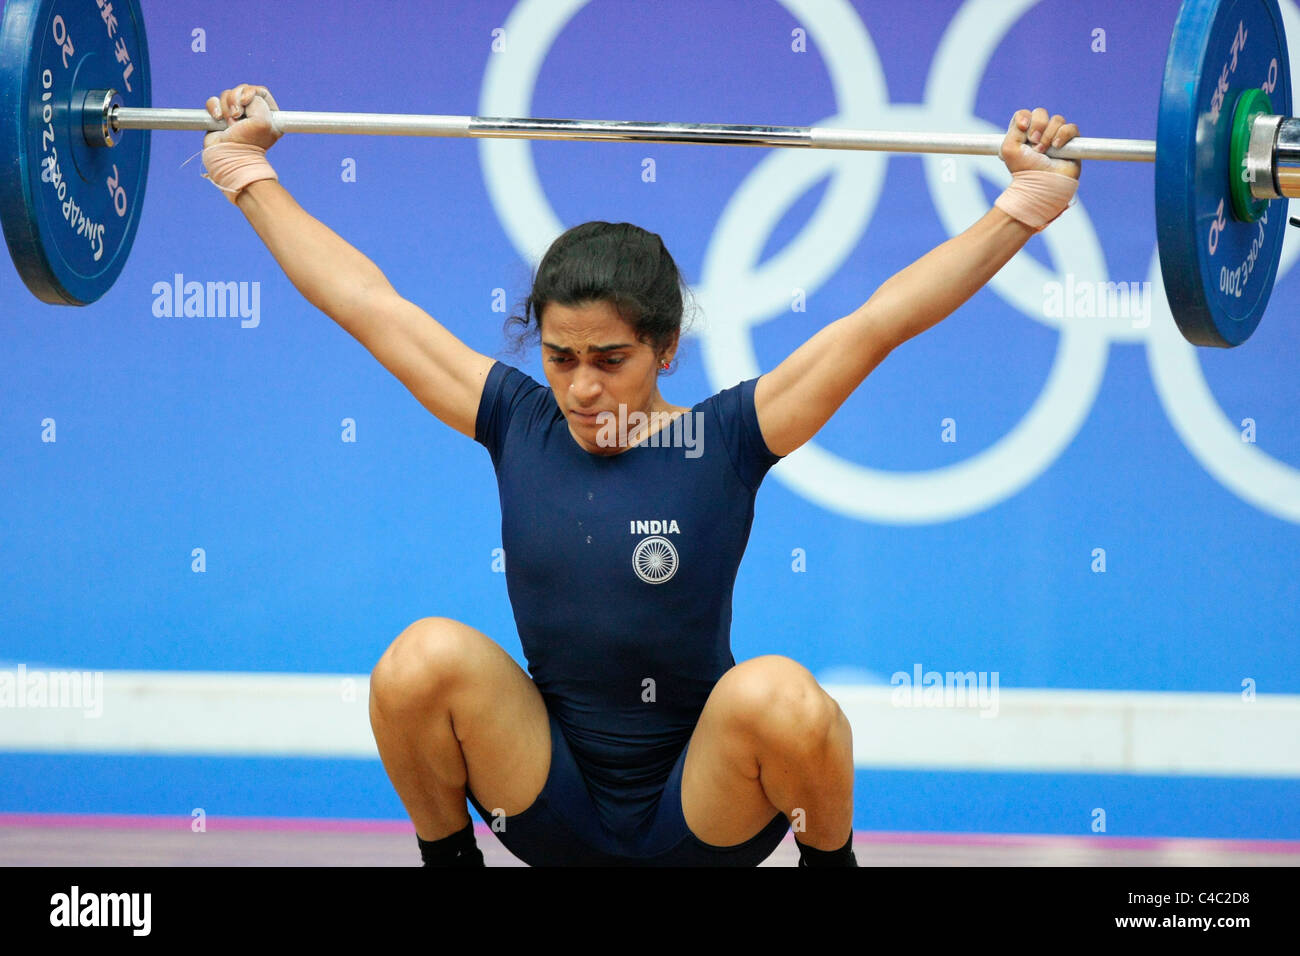 India's Santoshi Matsa in action during her snatch routine. - Stock Image